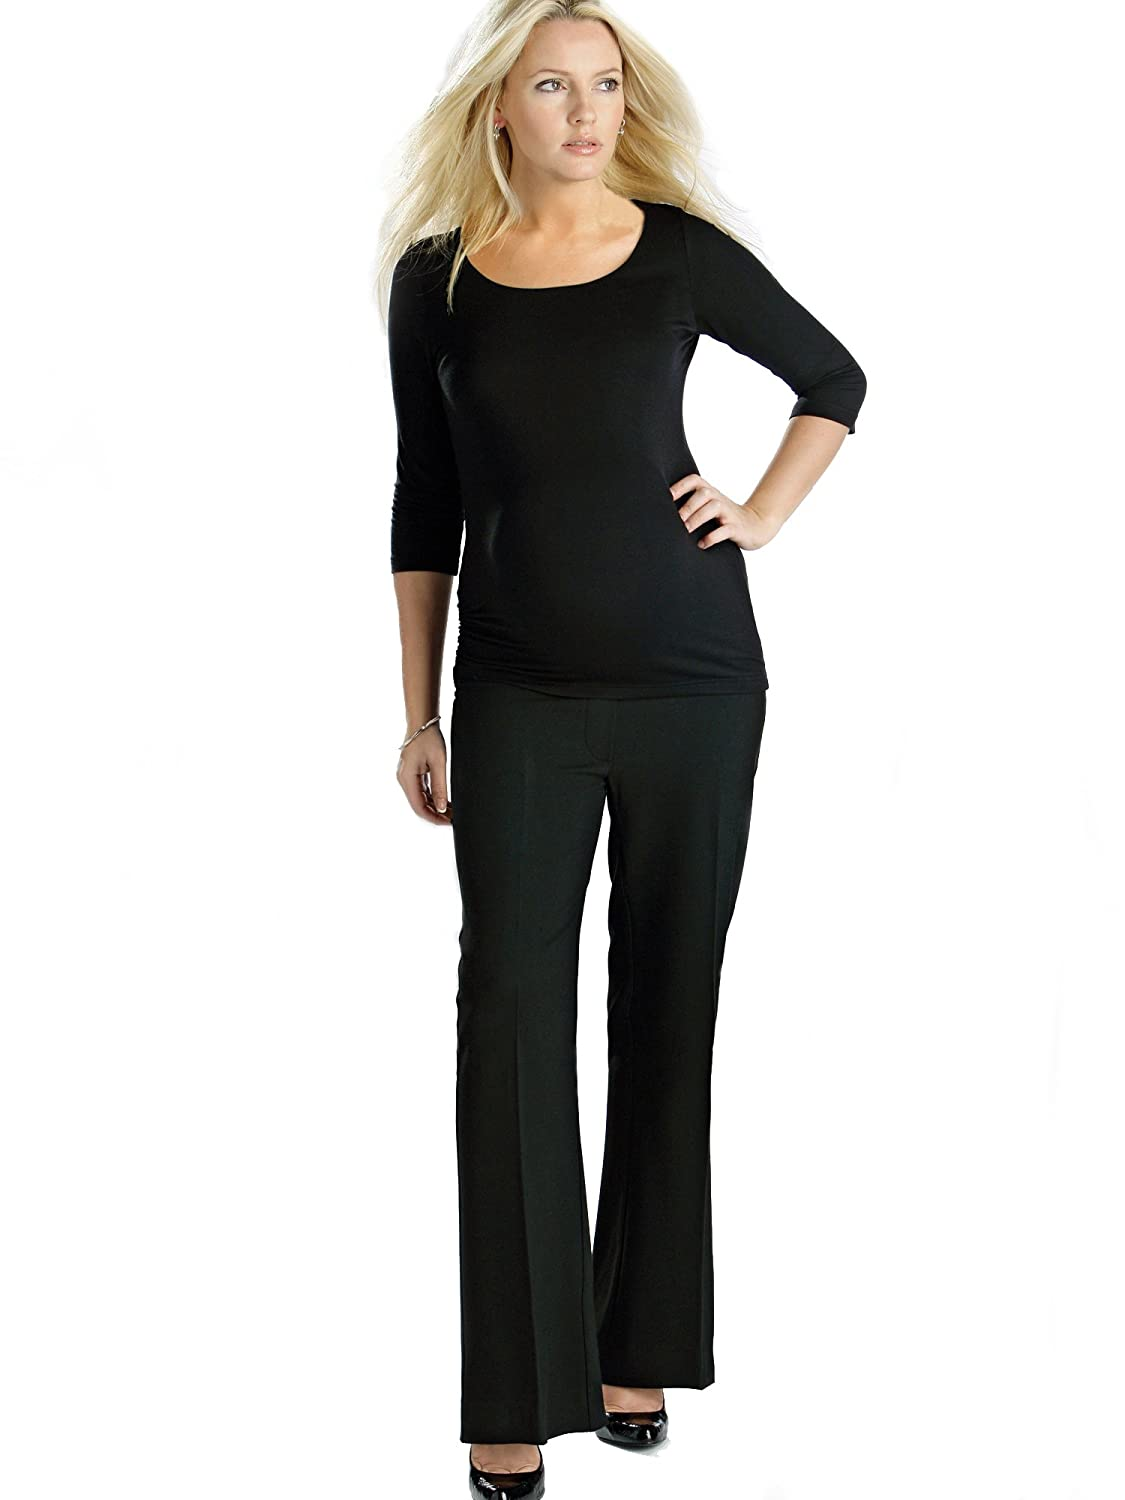 Tailored Maternity Trousers, Over the Bump, Sizes 8-22 (Available in 3 leg lengths), Smart Office Pregnancy Work Pants